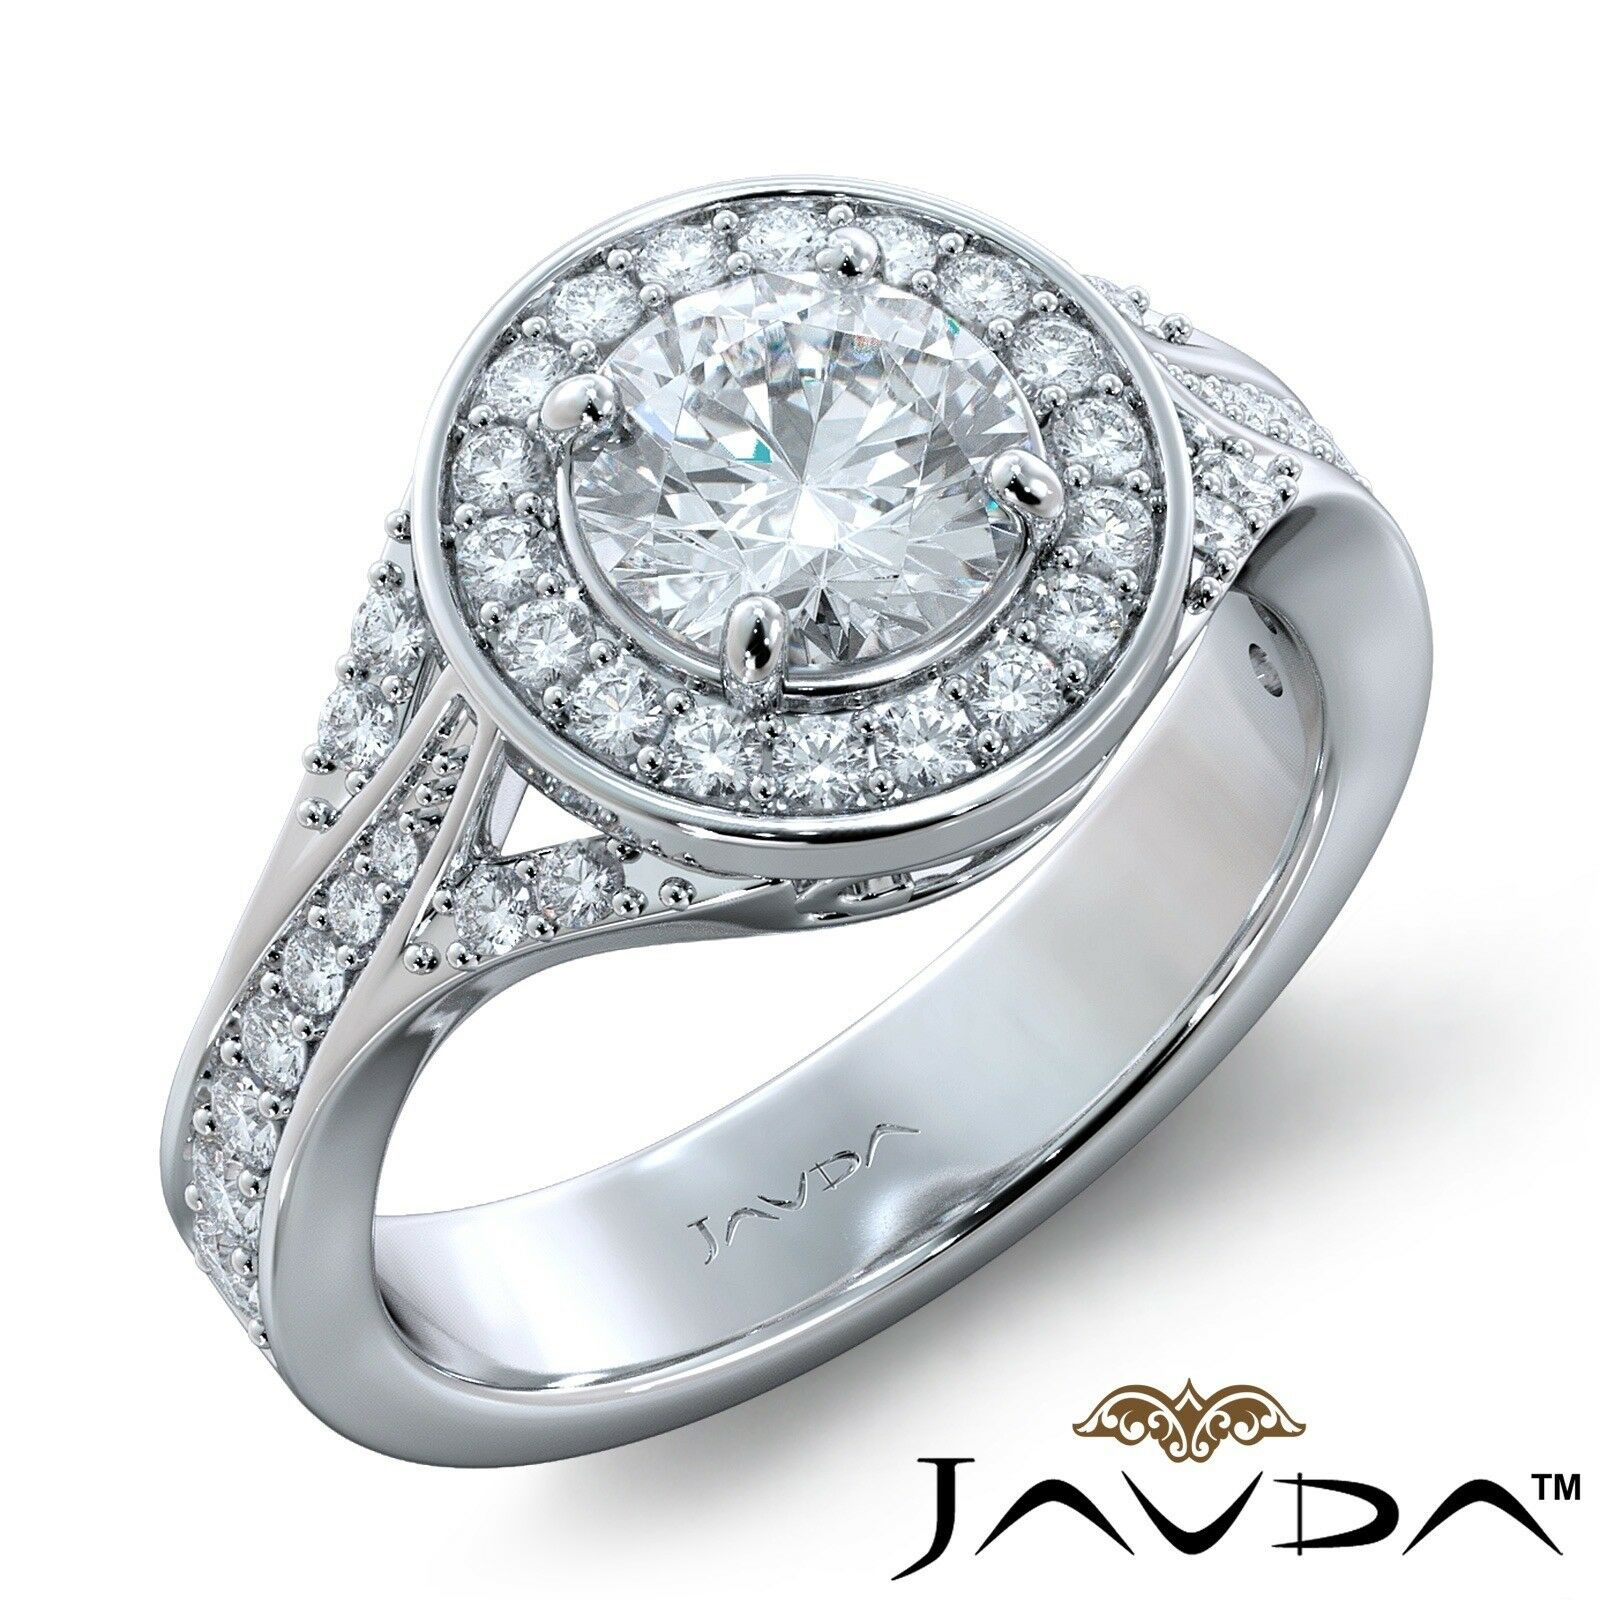 2.46ctw Halo Sidestone Pave Round Diamond Engagement Ring GIA E-VS1 White Gold